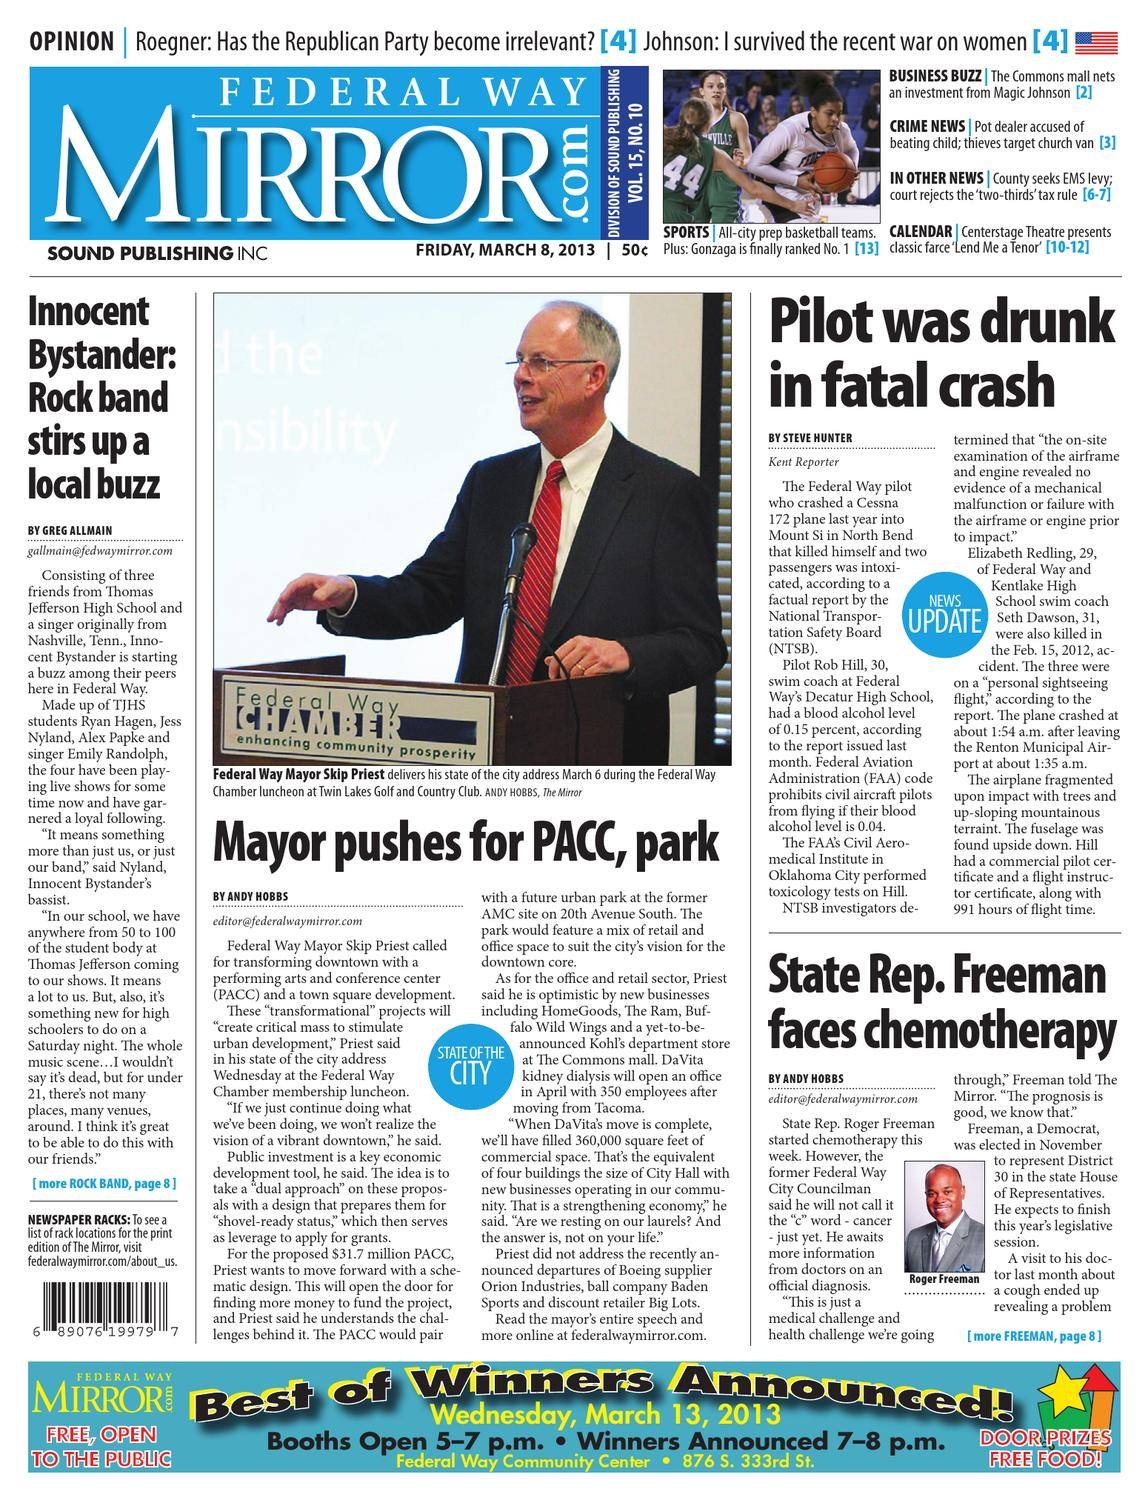 Federal way mirror march 08 2013 by sound publishing issuu thecheapjerseys Image collections